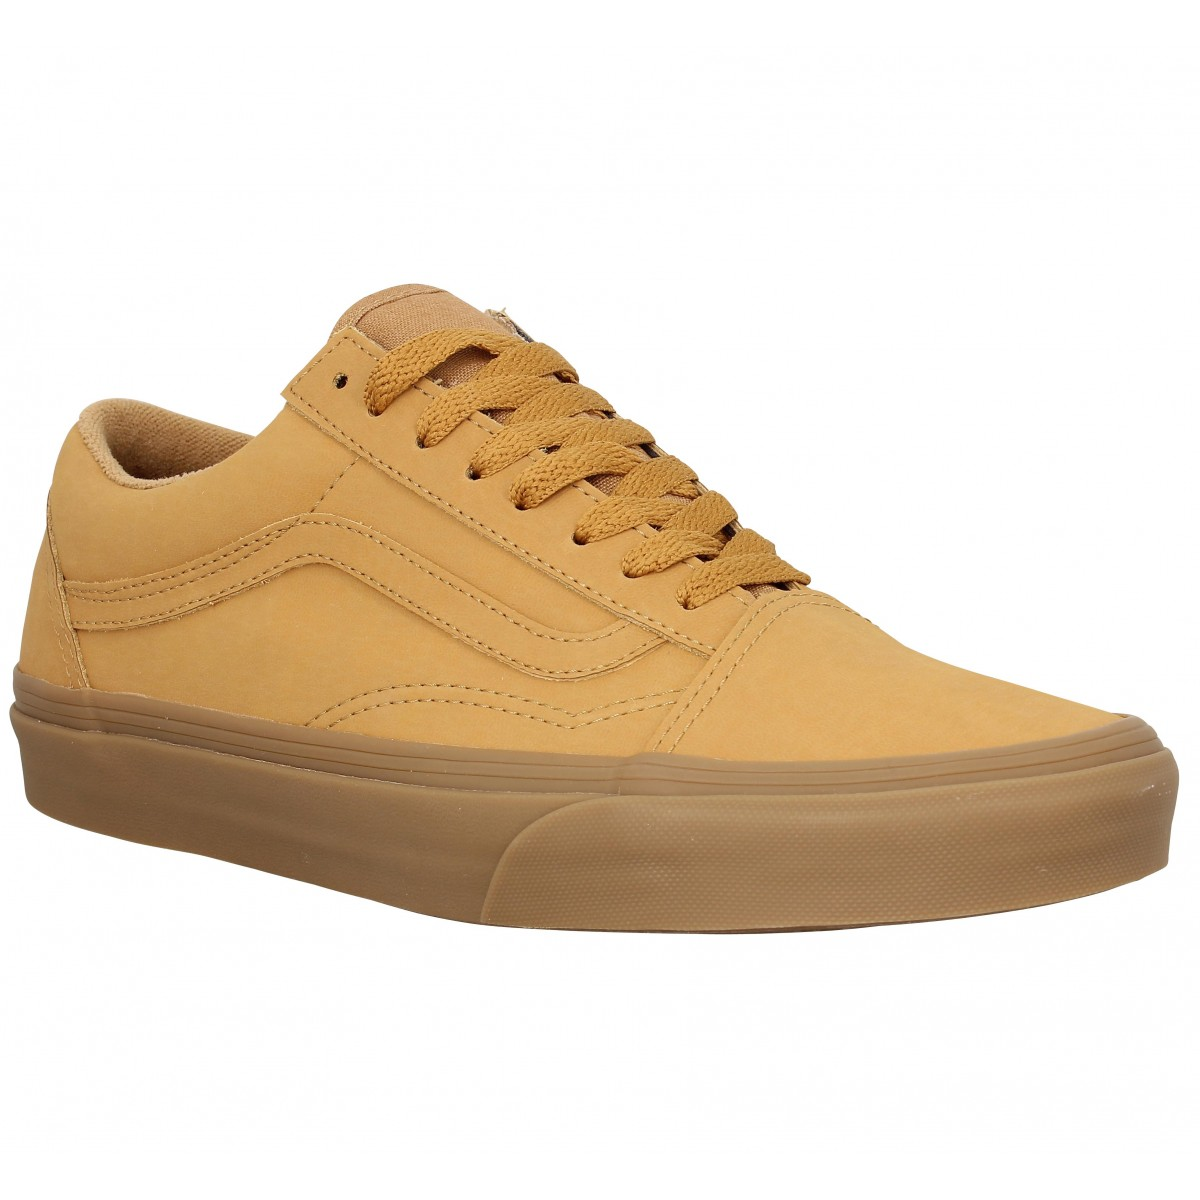 Baskets VANS Old Skool nubuck Homme Ocre